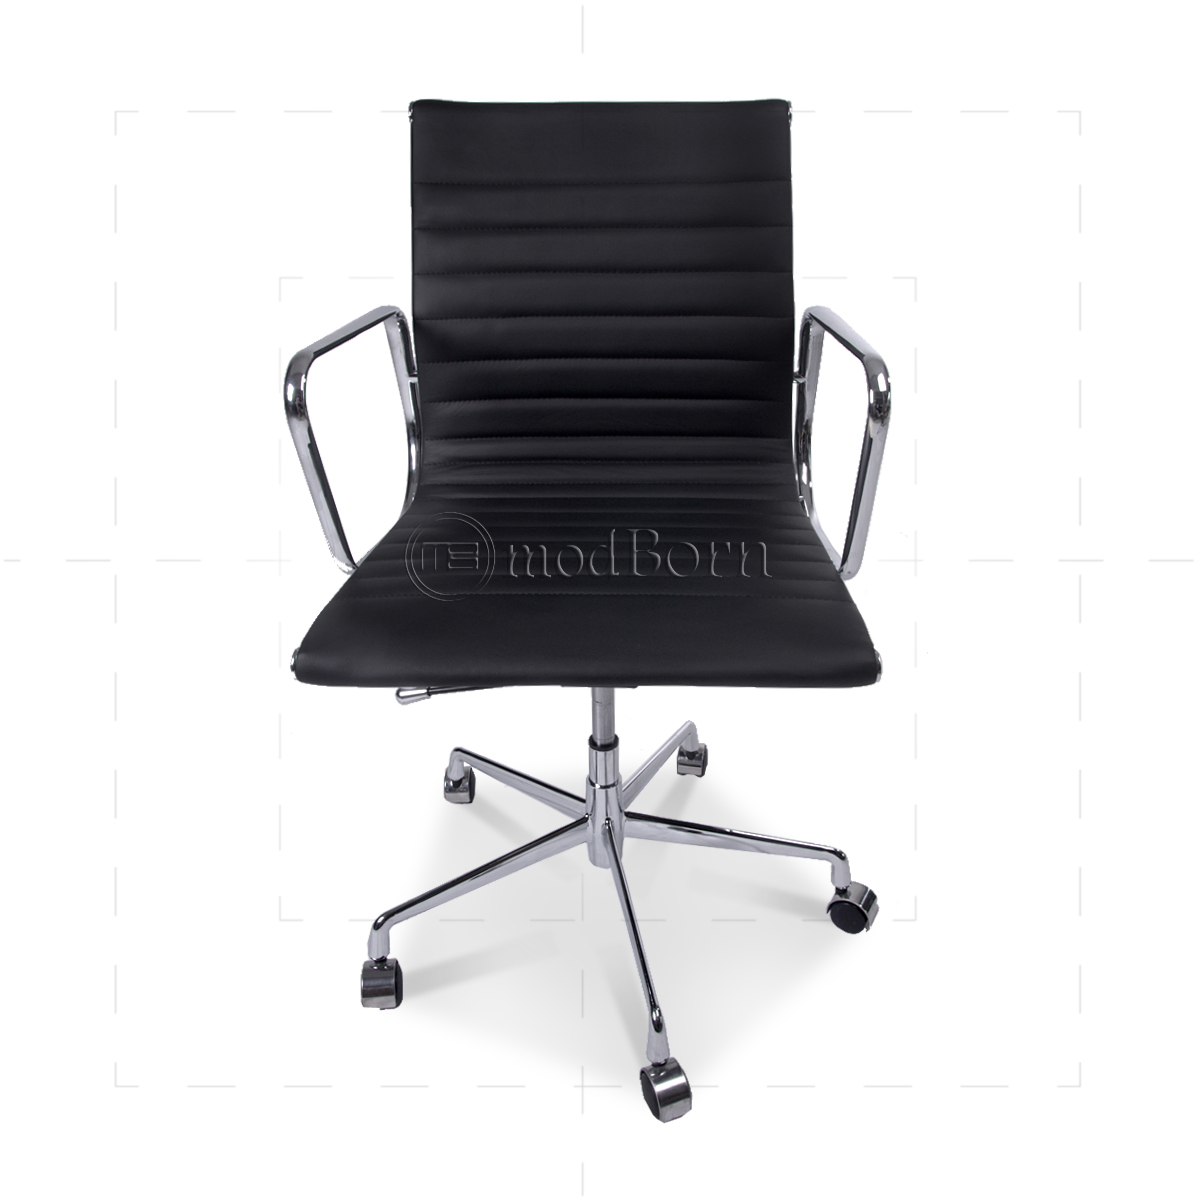 EA117 Eames Style Office Chair Low Back Ribbed Black  : eames office lowback black 1200x1200 from www.modborn.com size 1200 x 1200 jpeg 324kB